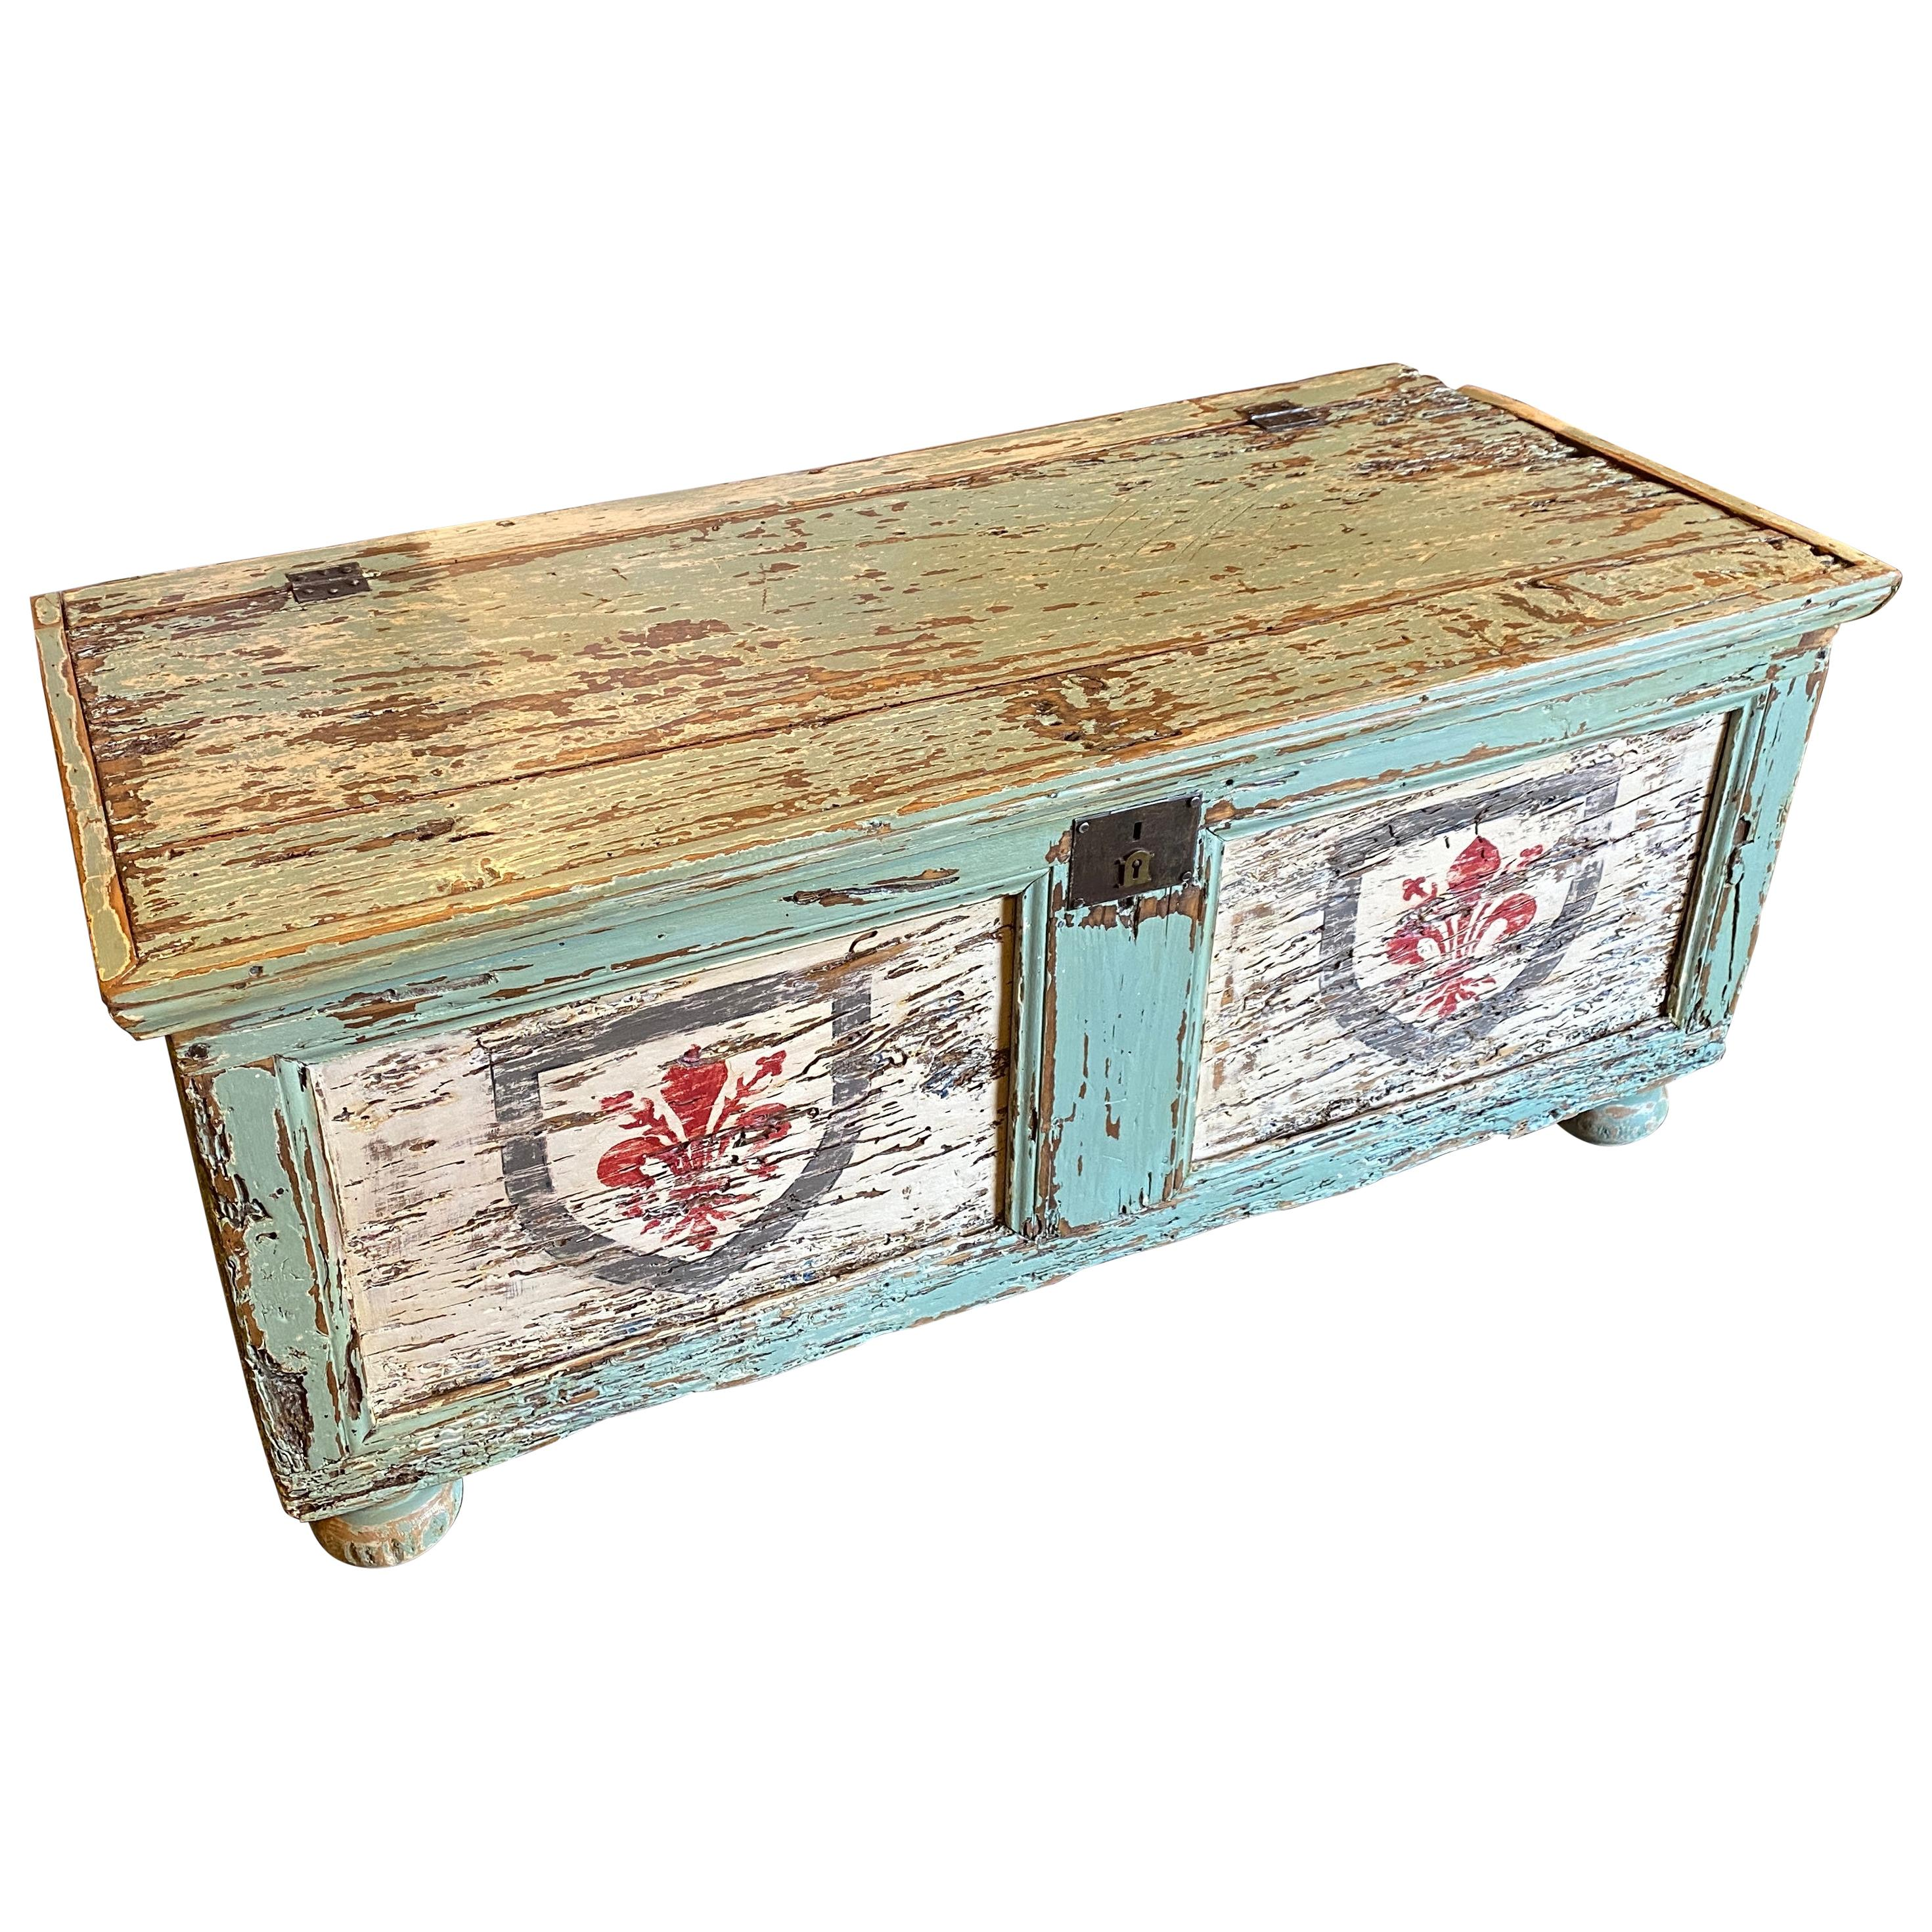 A 19th Century Antique Lacquered Wood Italian Blanket Chest